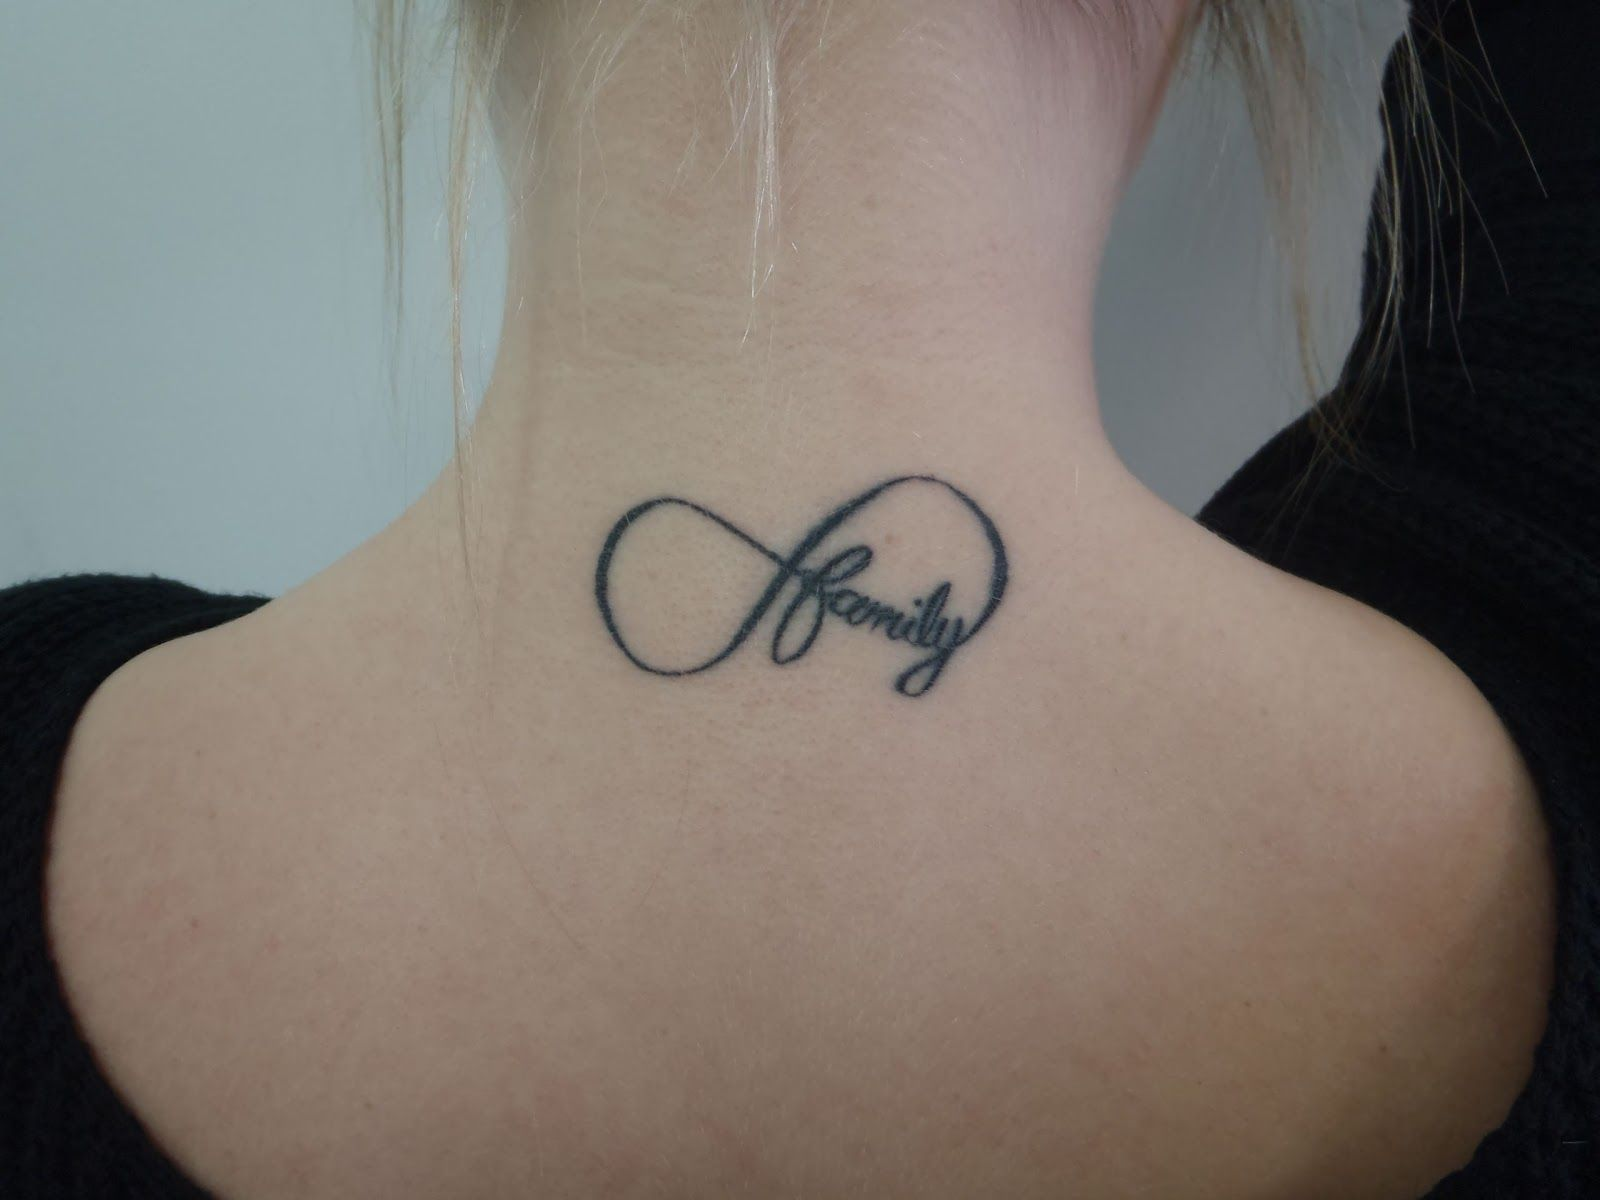 Infinity tattoo with names in them family infinity tattoo infinity tattoo with names in them family infinity tattoo designs 063 family infinity tattoo design tattoo pinterest family infinity tattoos buycottarizona Gallery